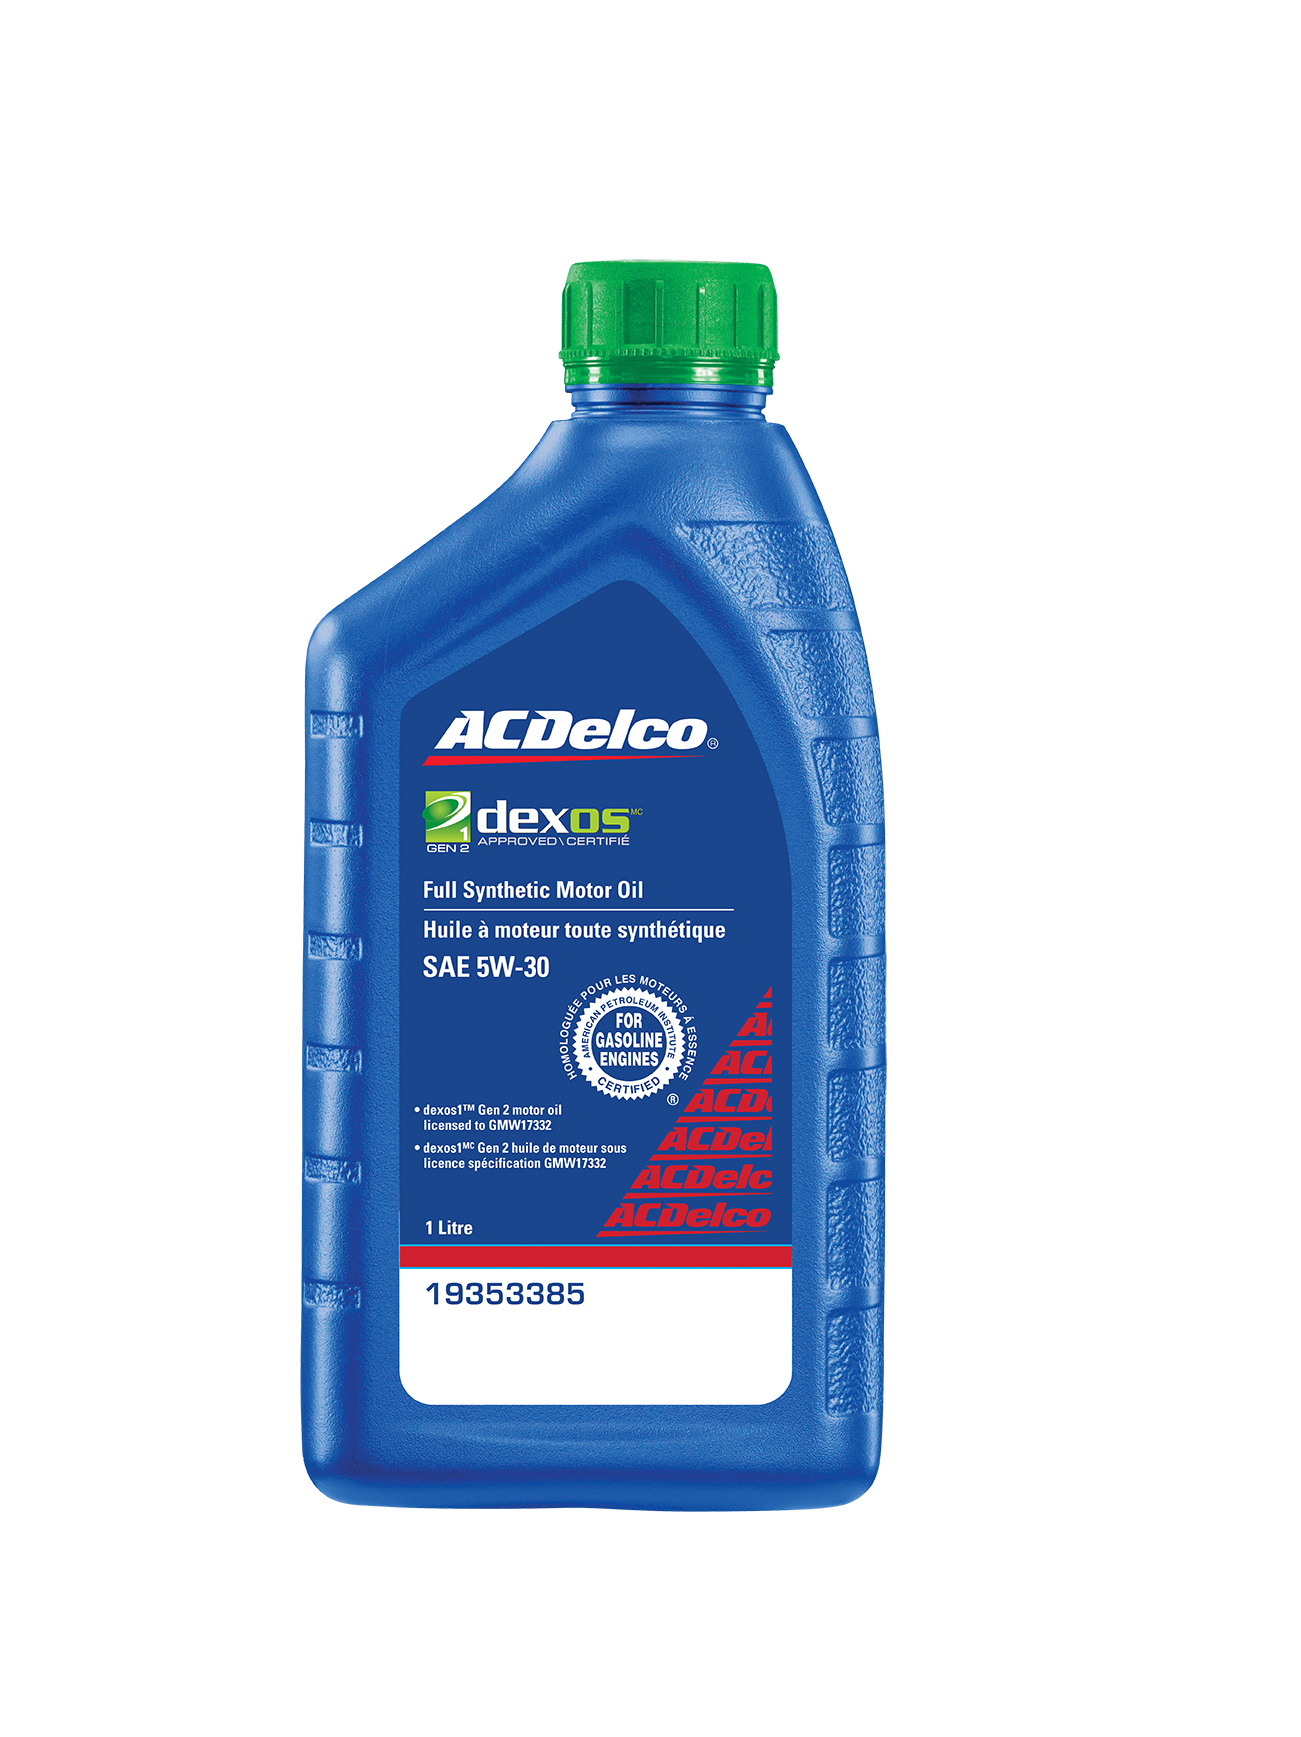 Acdelco canada dexos1 gen2 full synthetic engine oil for Synthetic motor oil sale